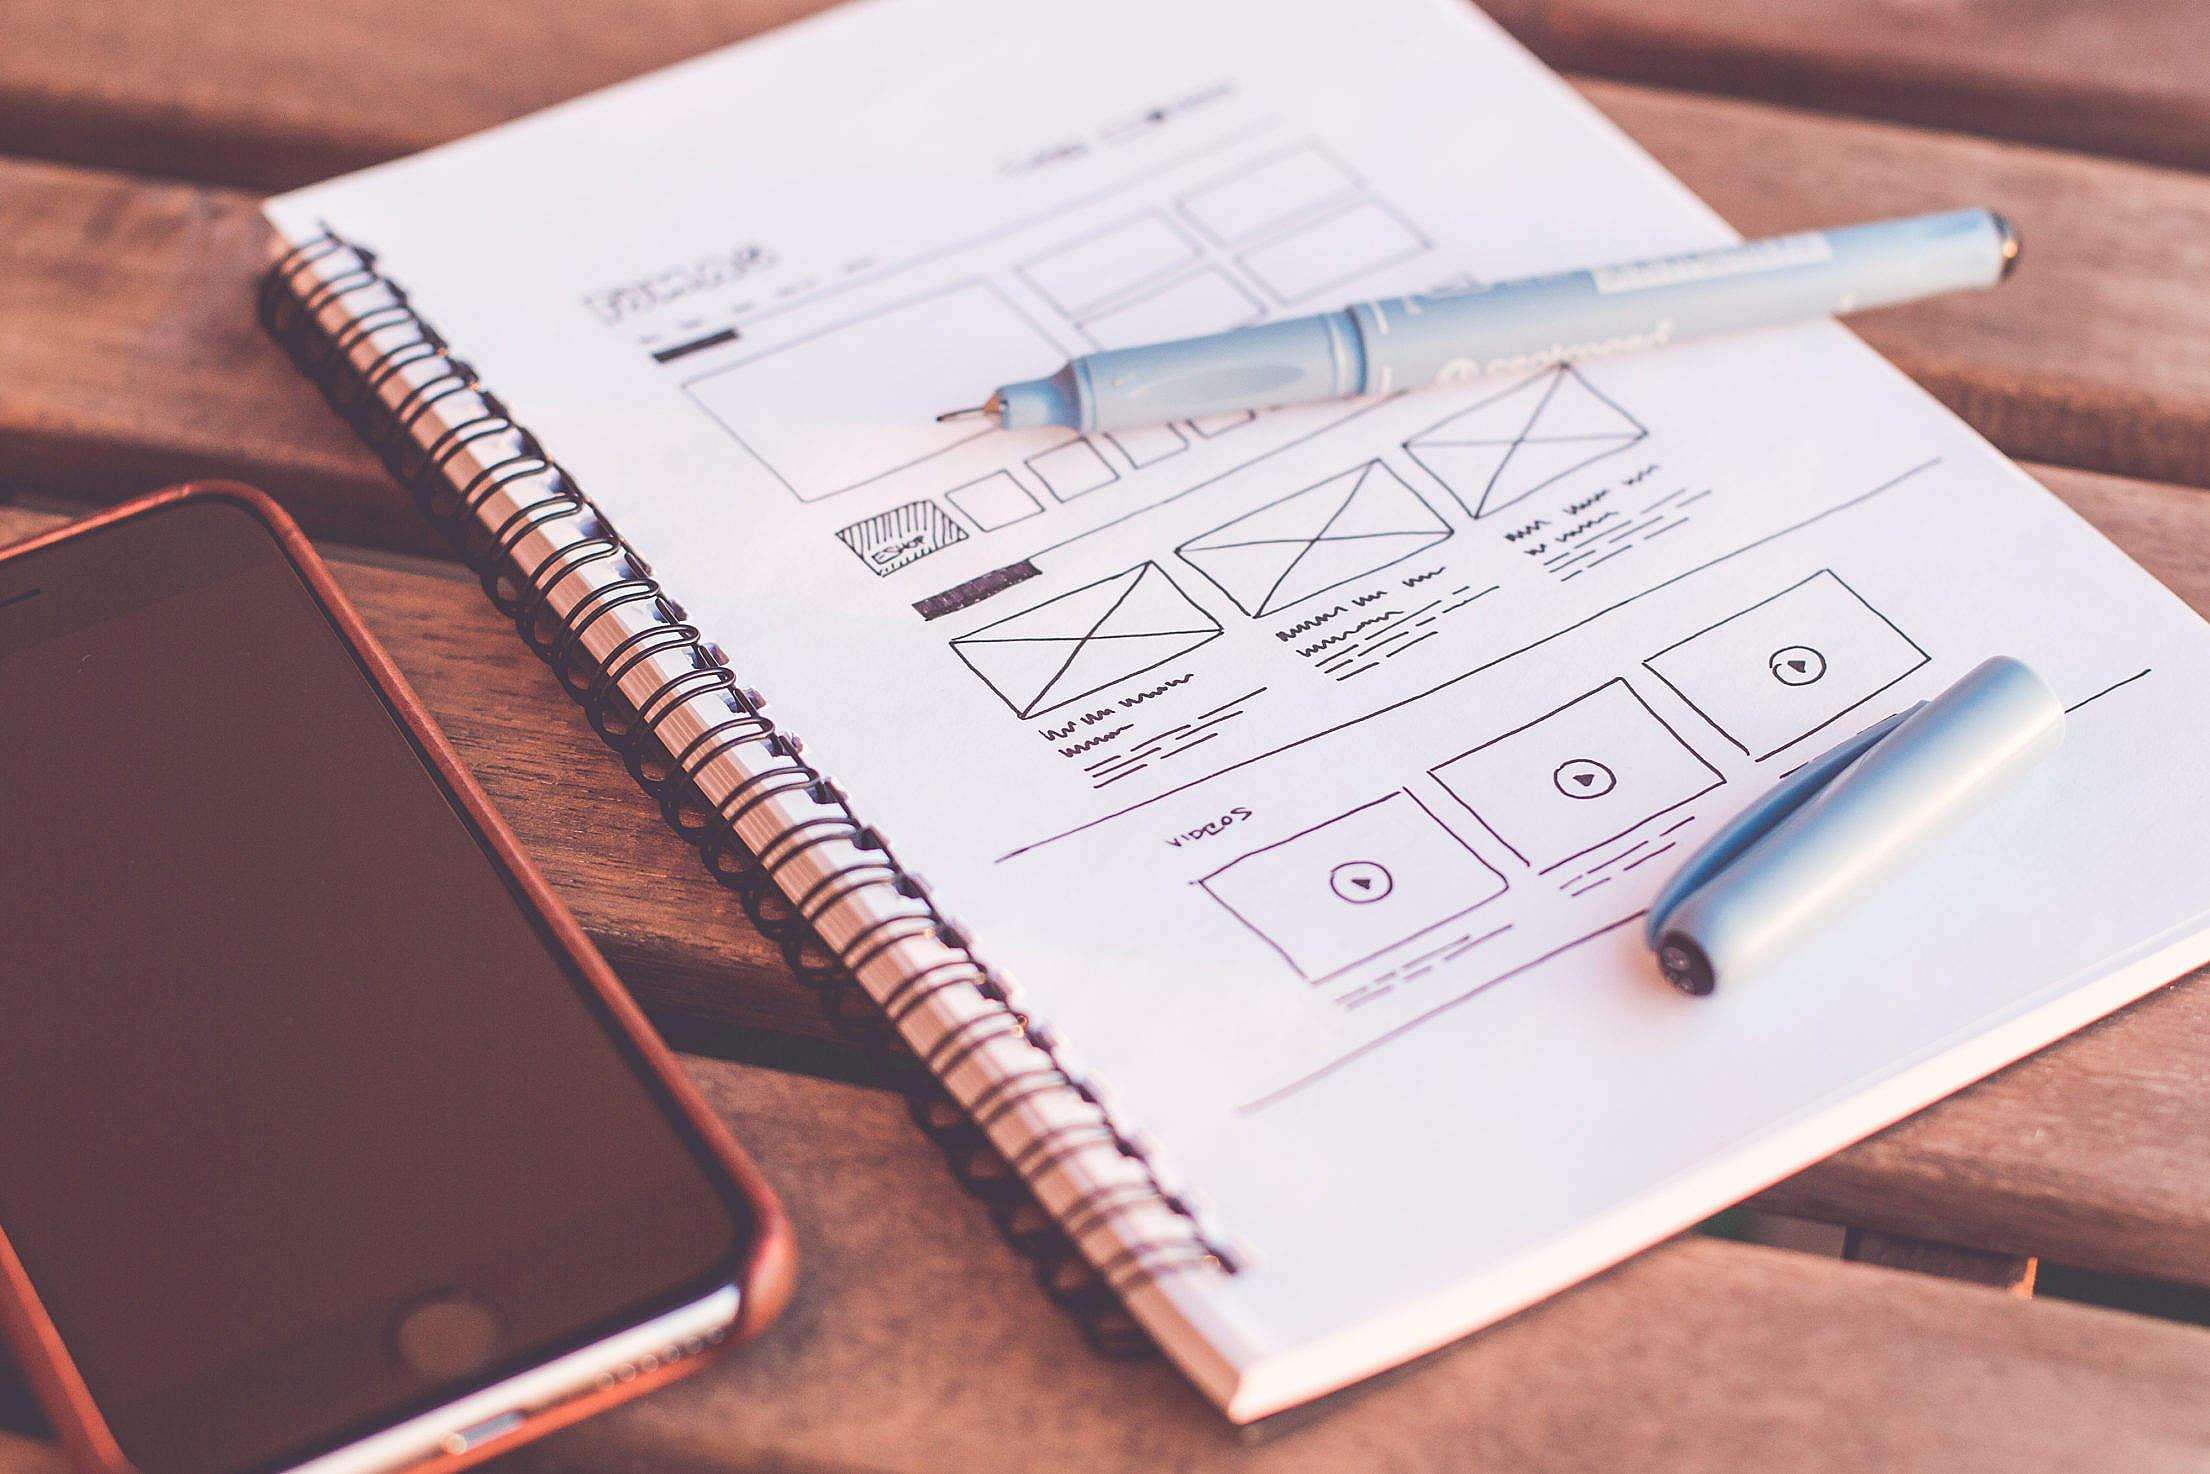 Sketching Webdesign Layout Wireframe Ideas Free Stock Photo